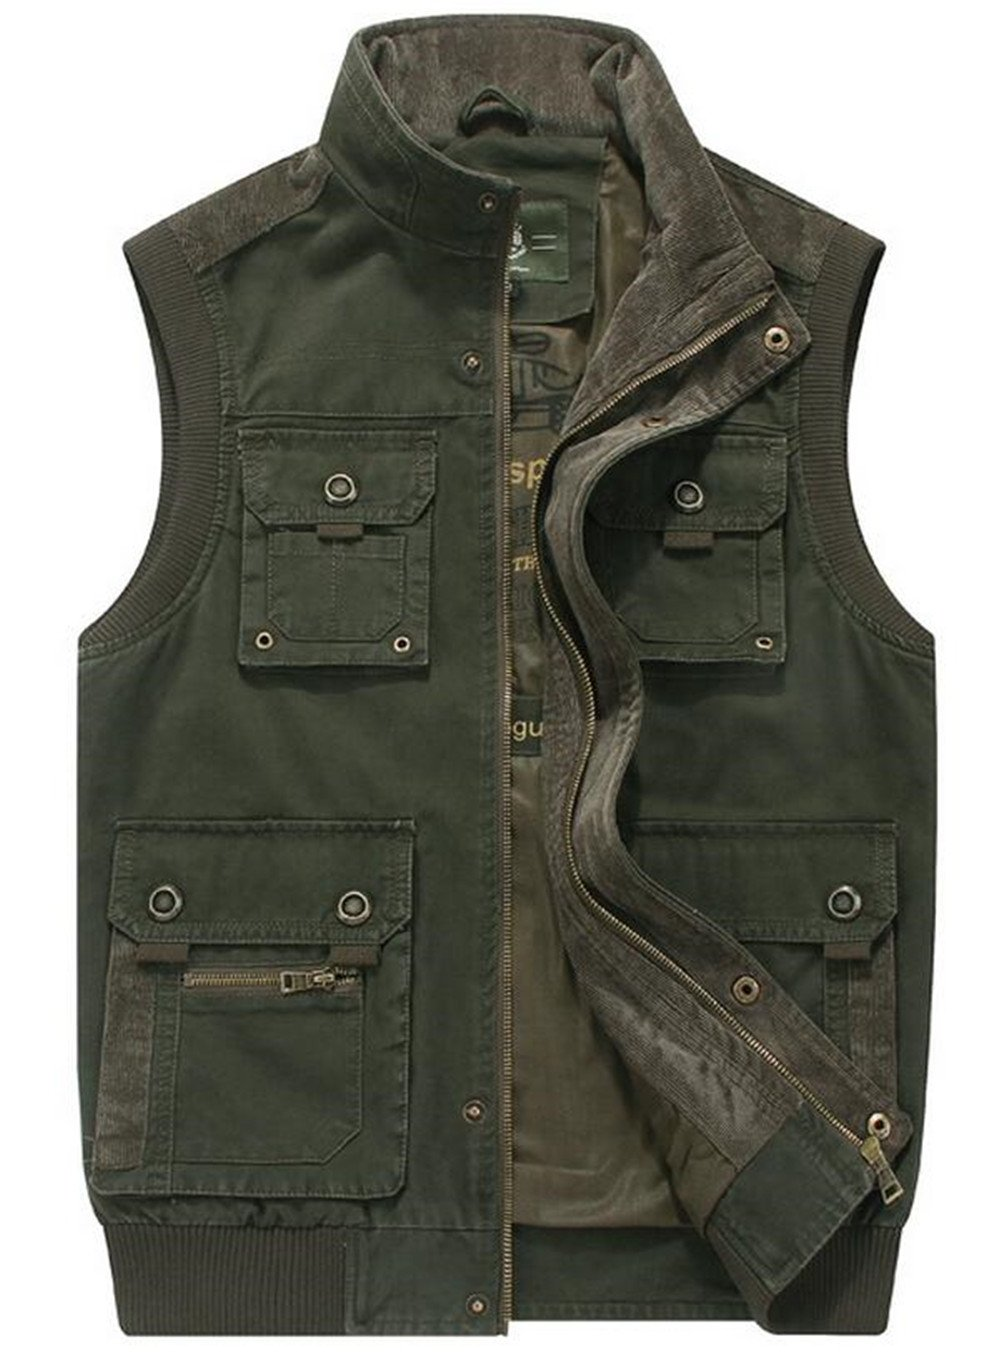 JEWOSOR Men's Military Gilets Vest Outdoor Multi Pockets Sleeveless Jacket Top Fishing Hunting Shooting Hiking (US XXX-Large/Tag Asia 6XL, Amry Green)